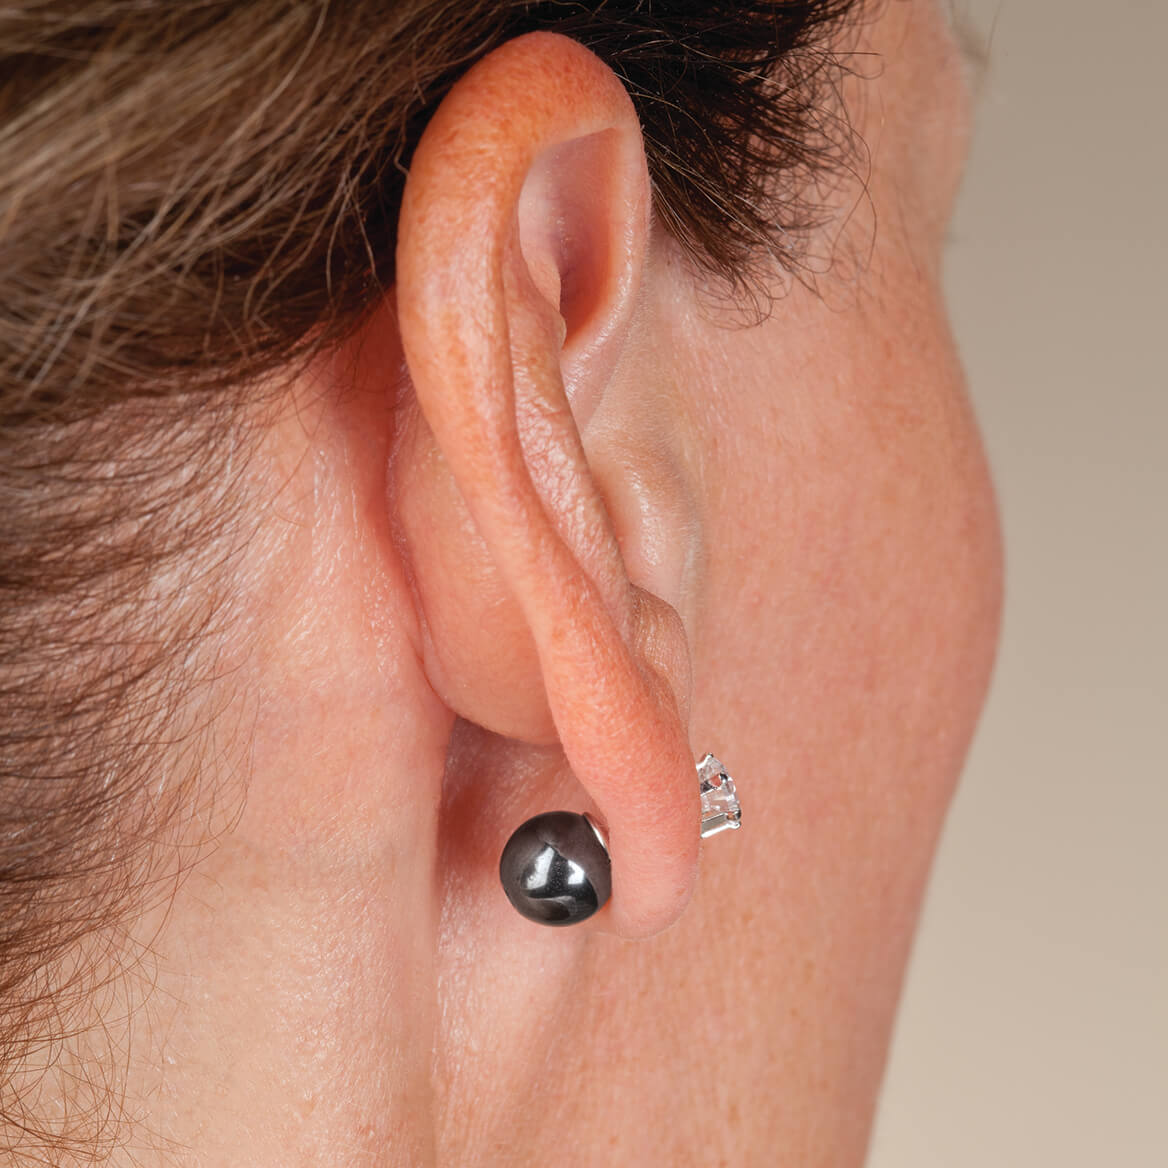 9330f9209 Rubber Earring Backs - Earring Backs - Miles Kimball